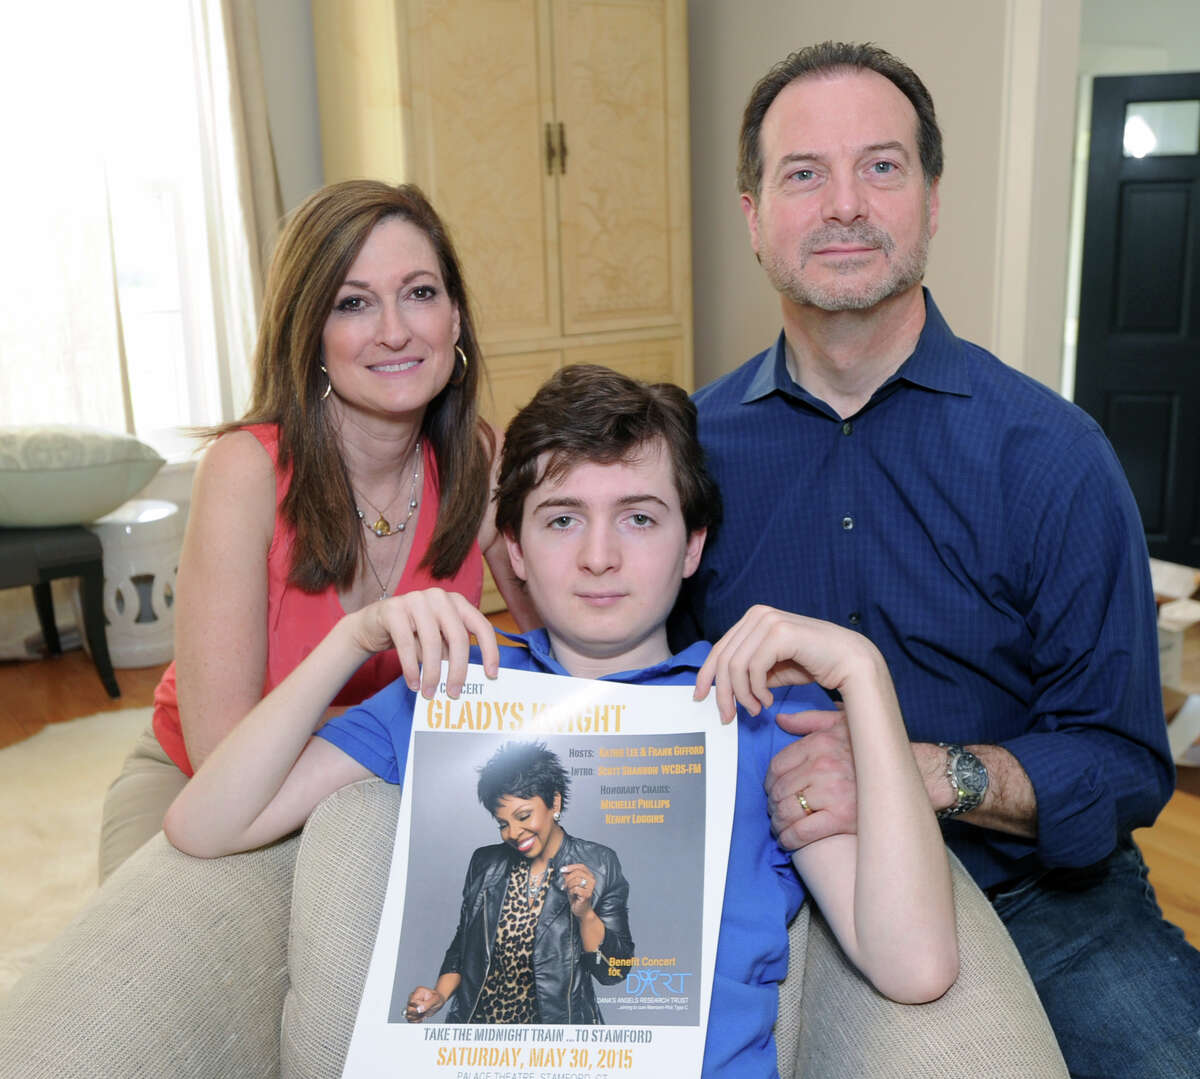 Phil and Andrea Marella with their son, Andrew Marella, 15, holding a Gladys Knight poster at their Greenwich home, Friday, May 8, 2015. Andrew Marella suffers from Niemann-Pick Type C, a genetic disease that is a neurodegenerative disorder which causes progressive deterioration of the nervous system. The family who also lost a daughter, Dana, to the disorder, is spearheading a benefit gala featuring Kinght at the Palace Theatre in Stamford on Saturday, May 30, to raise money and awareness for medical research of Niemann-Pick Type C.